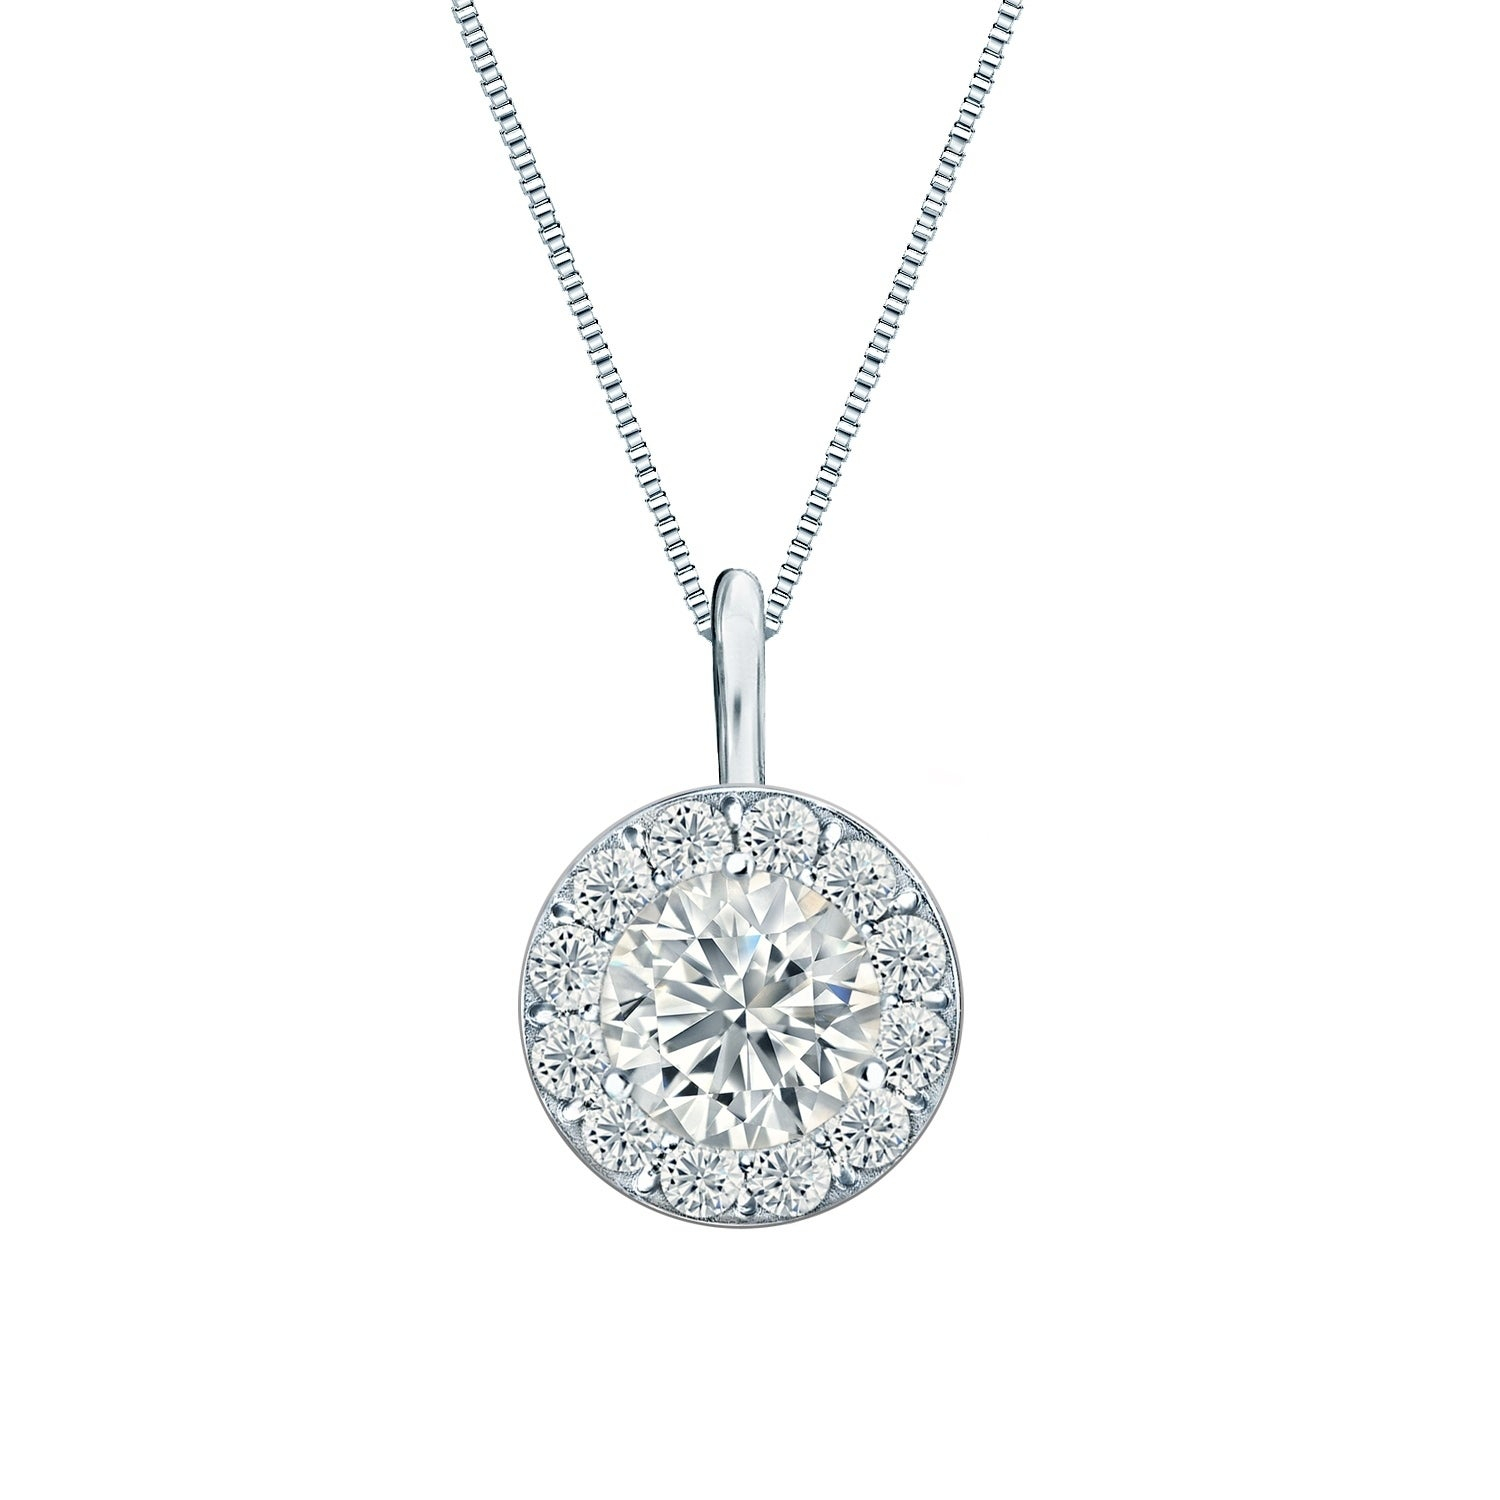 Ethical Sparkle 1/4Ctw Round Lab Created Halo Diamond Necklace 14K Gold Throughout Newest Square Sparkle Halo Necklaces (View 10 of 25)